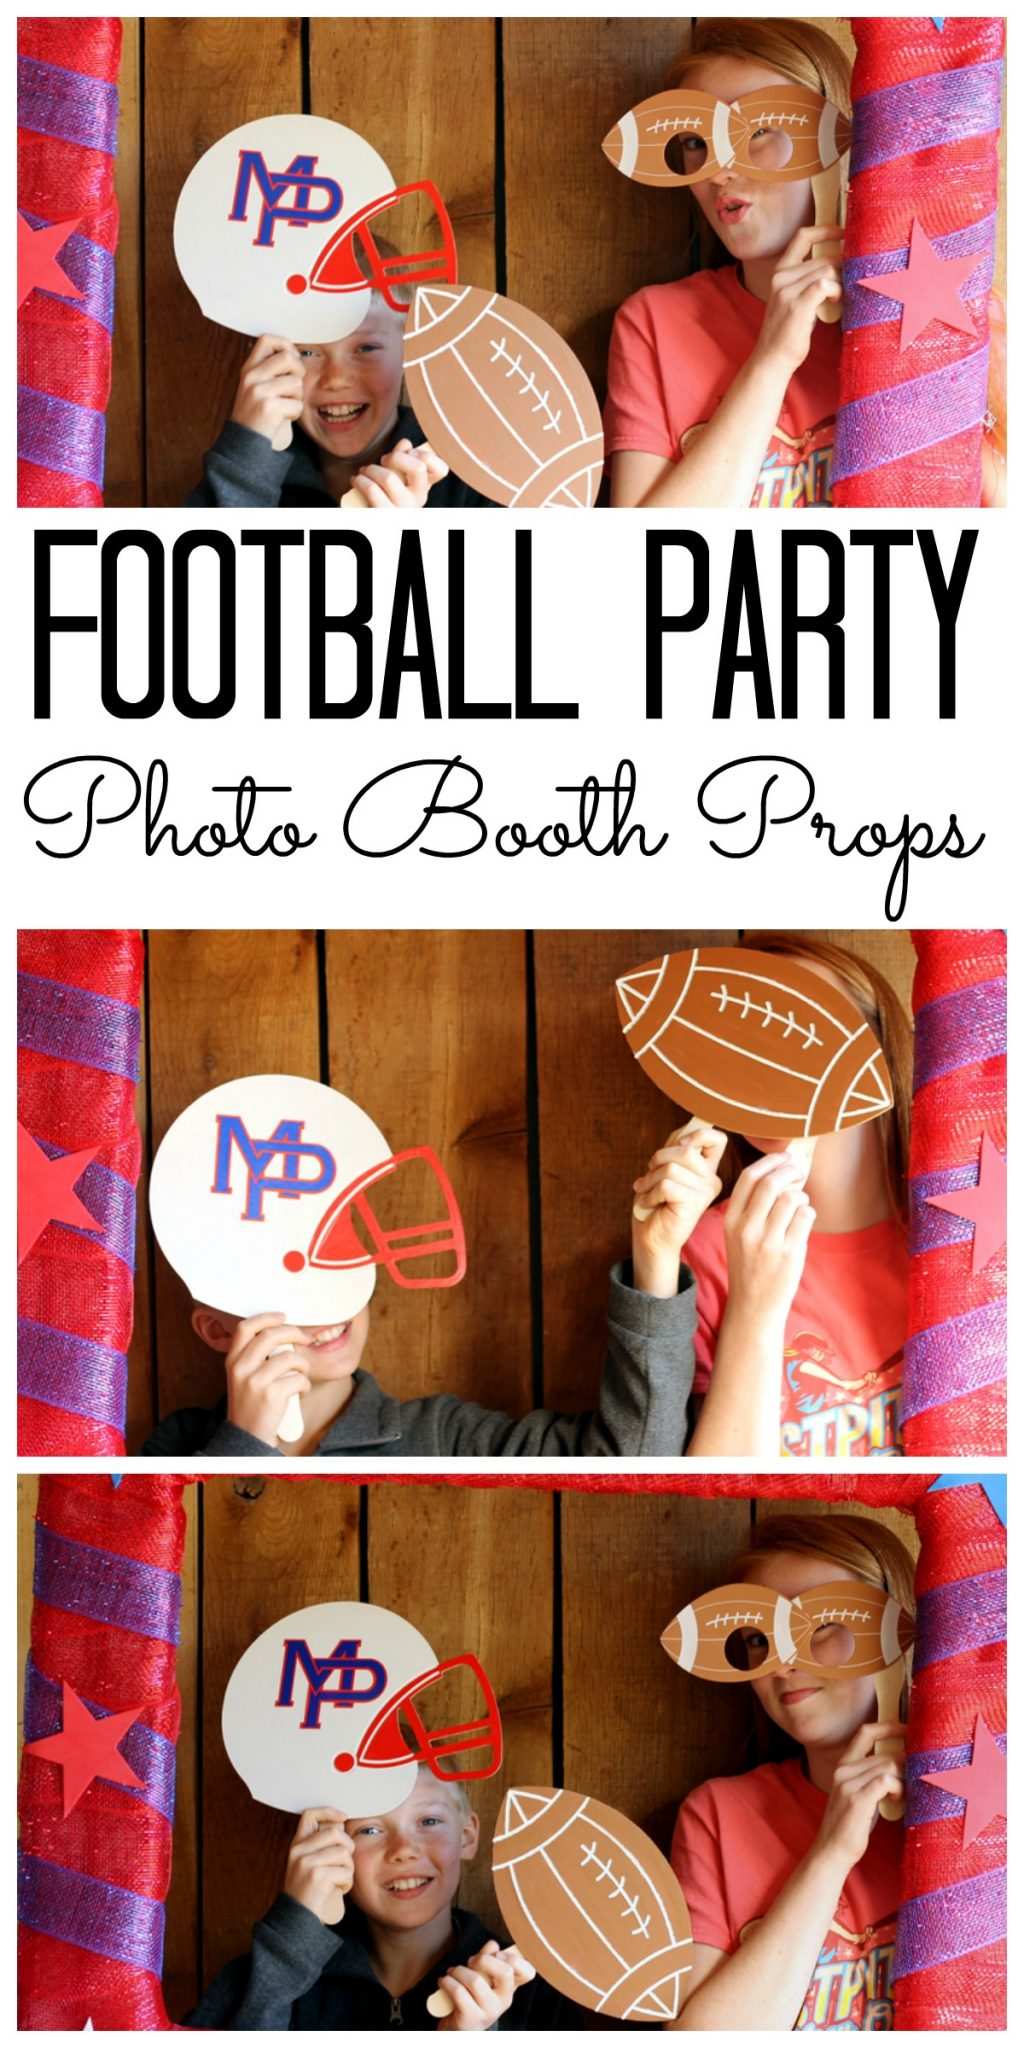 Make these football party photo booth props in just minutes! Add some fun to any football party with a photo booth!